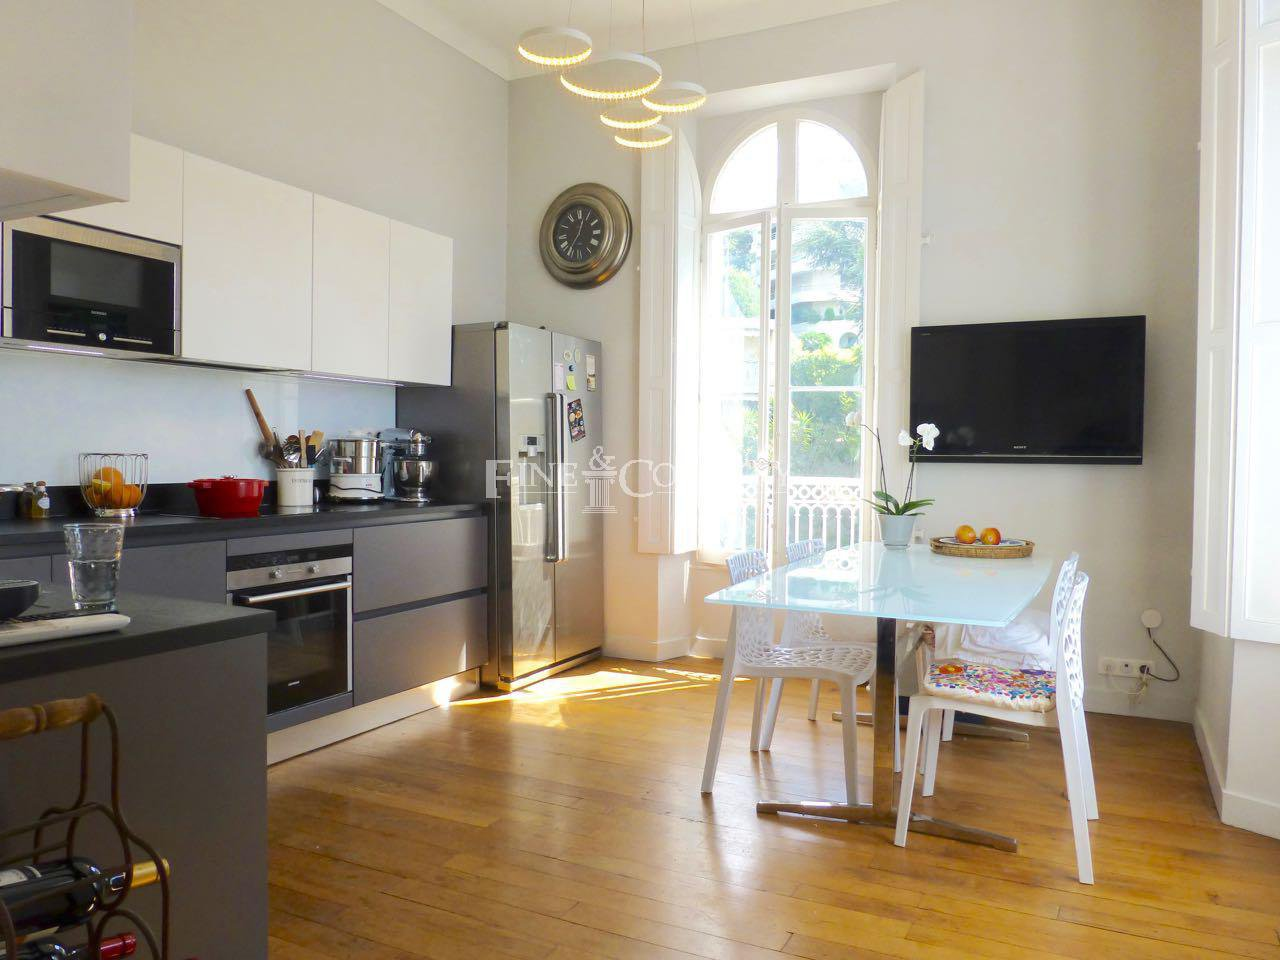 Apartment for sale in La Californie, Cannes, France